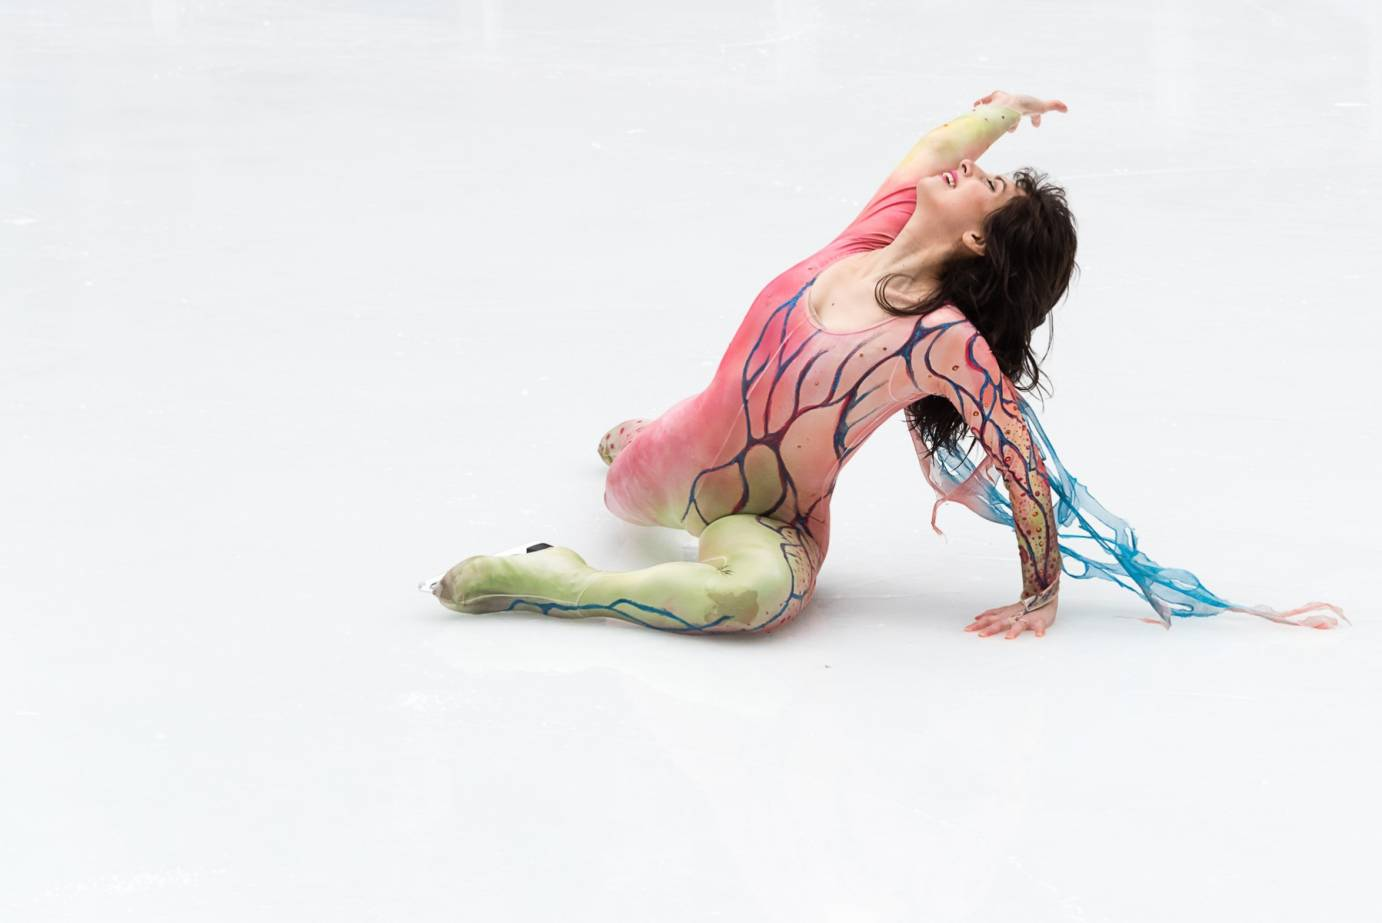 An ice dancer in a pastel colored unitard, lays on the ice and passionately raises her arm to the sky